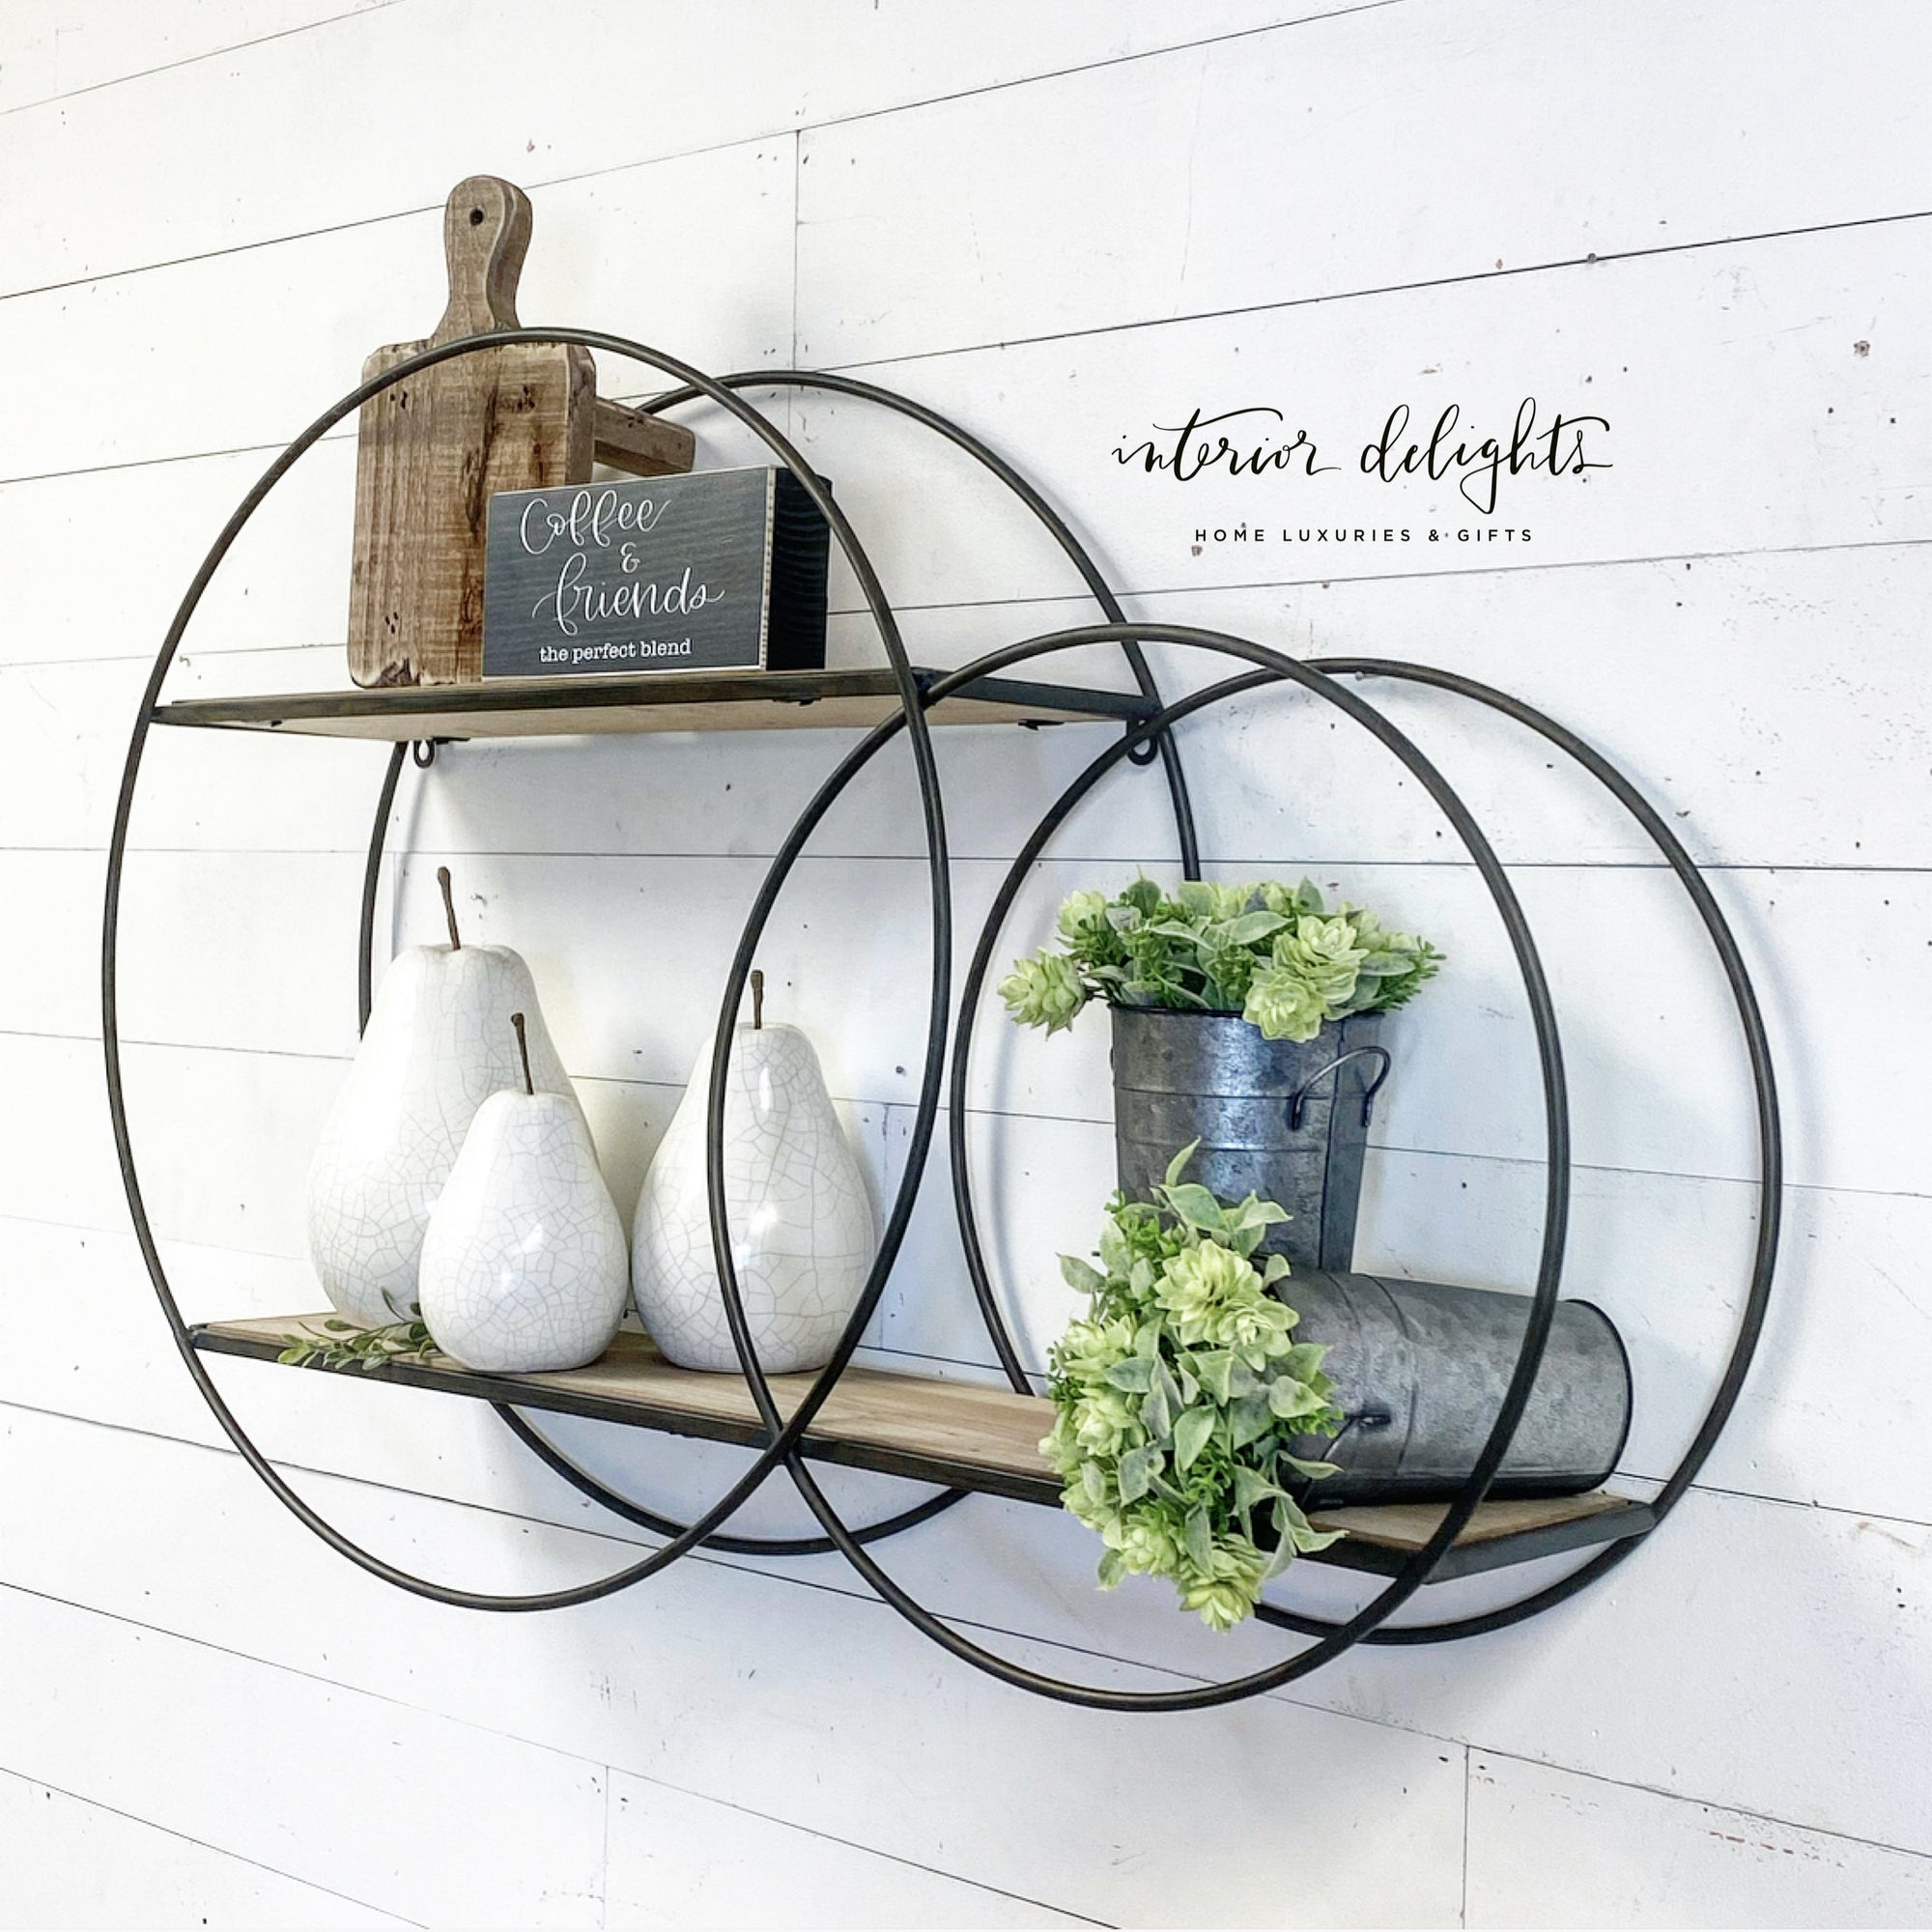 Large One Piece Circular Shelf - Interior Delights Parker